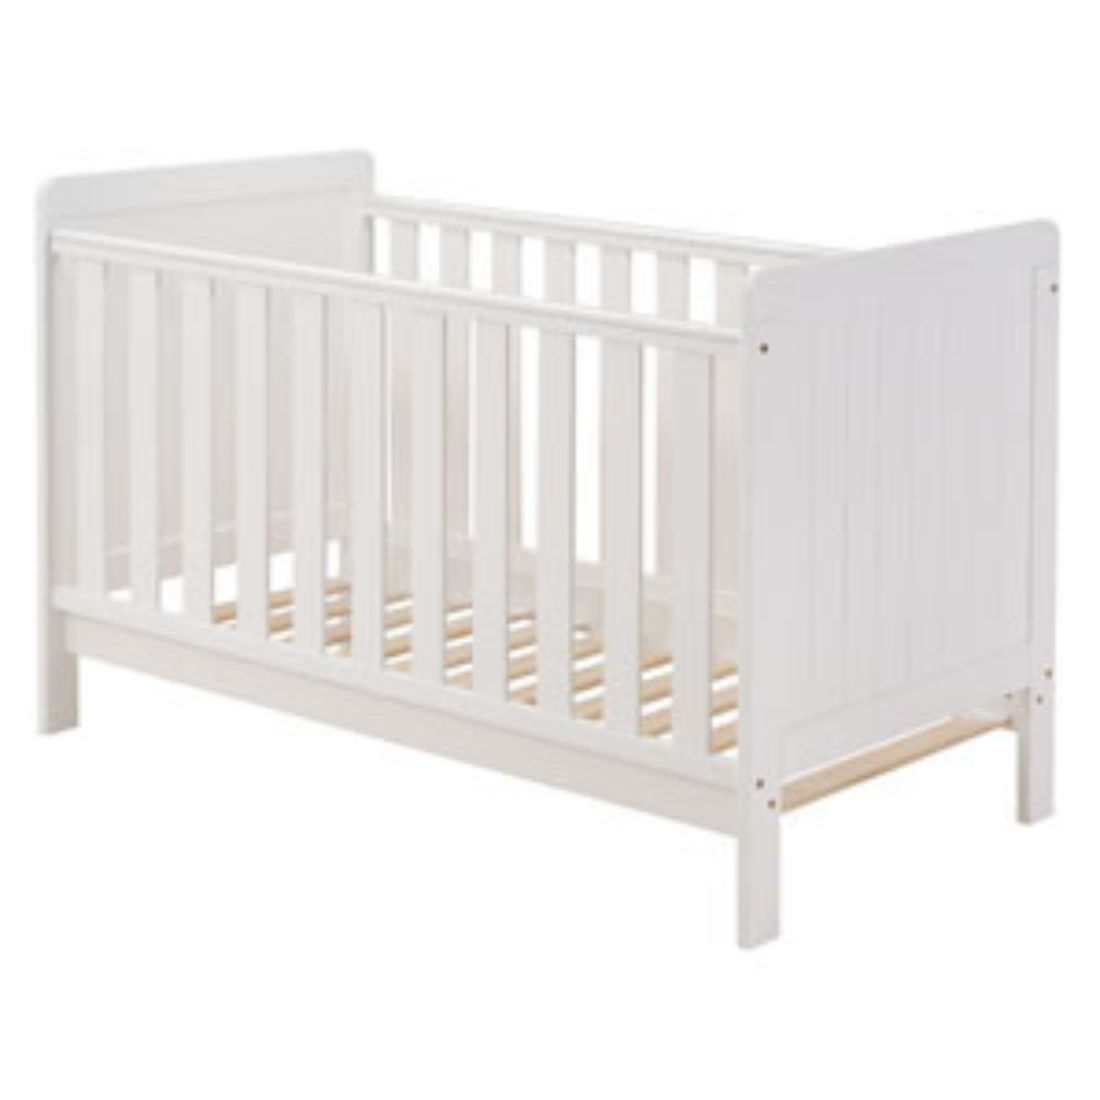 Cotbeds Nursery Decoration & Furniture Cheap Price John Lewis Broadway Cotbed Street Price